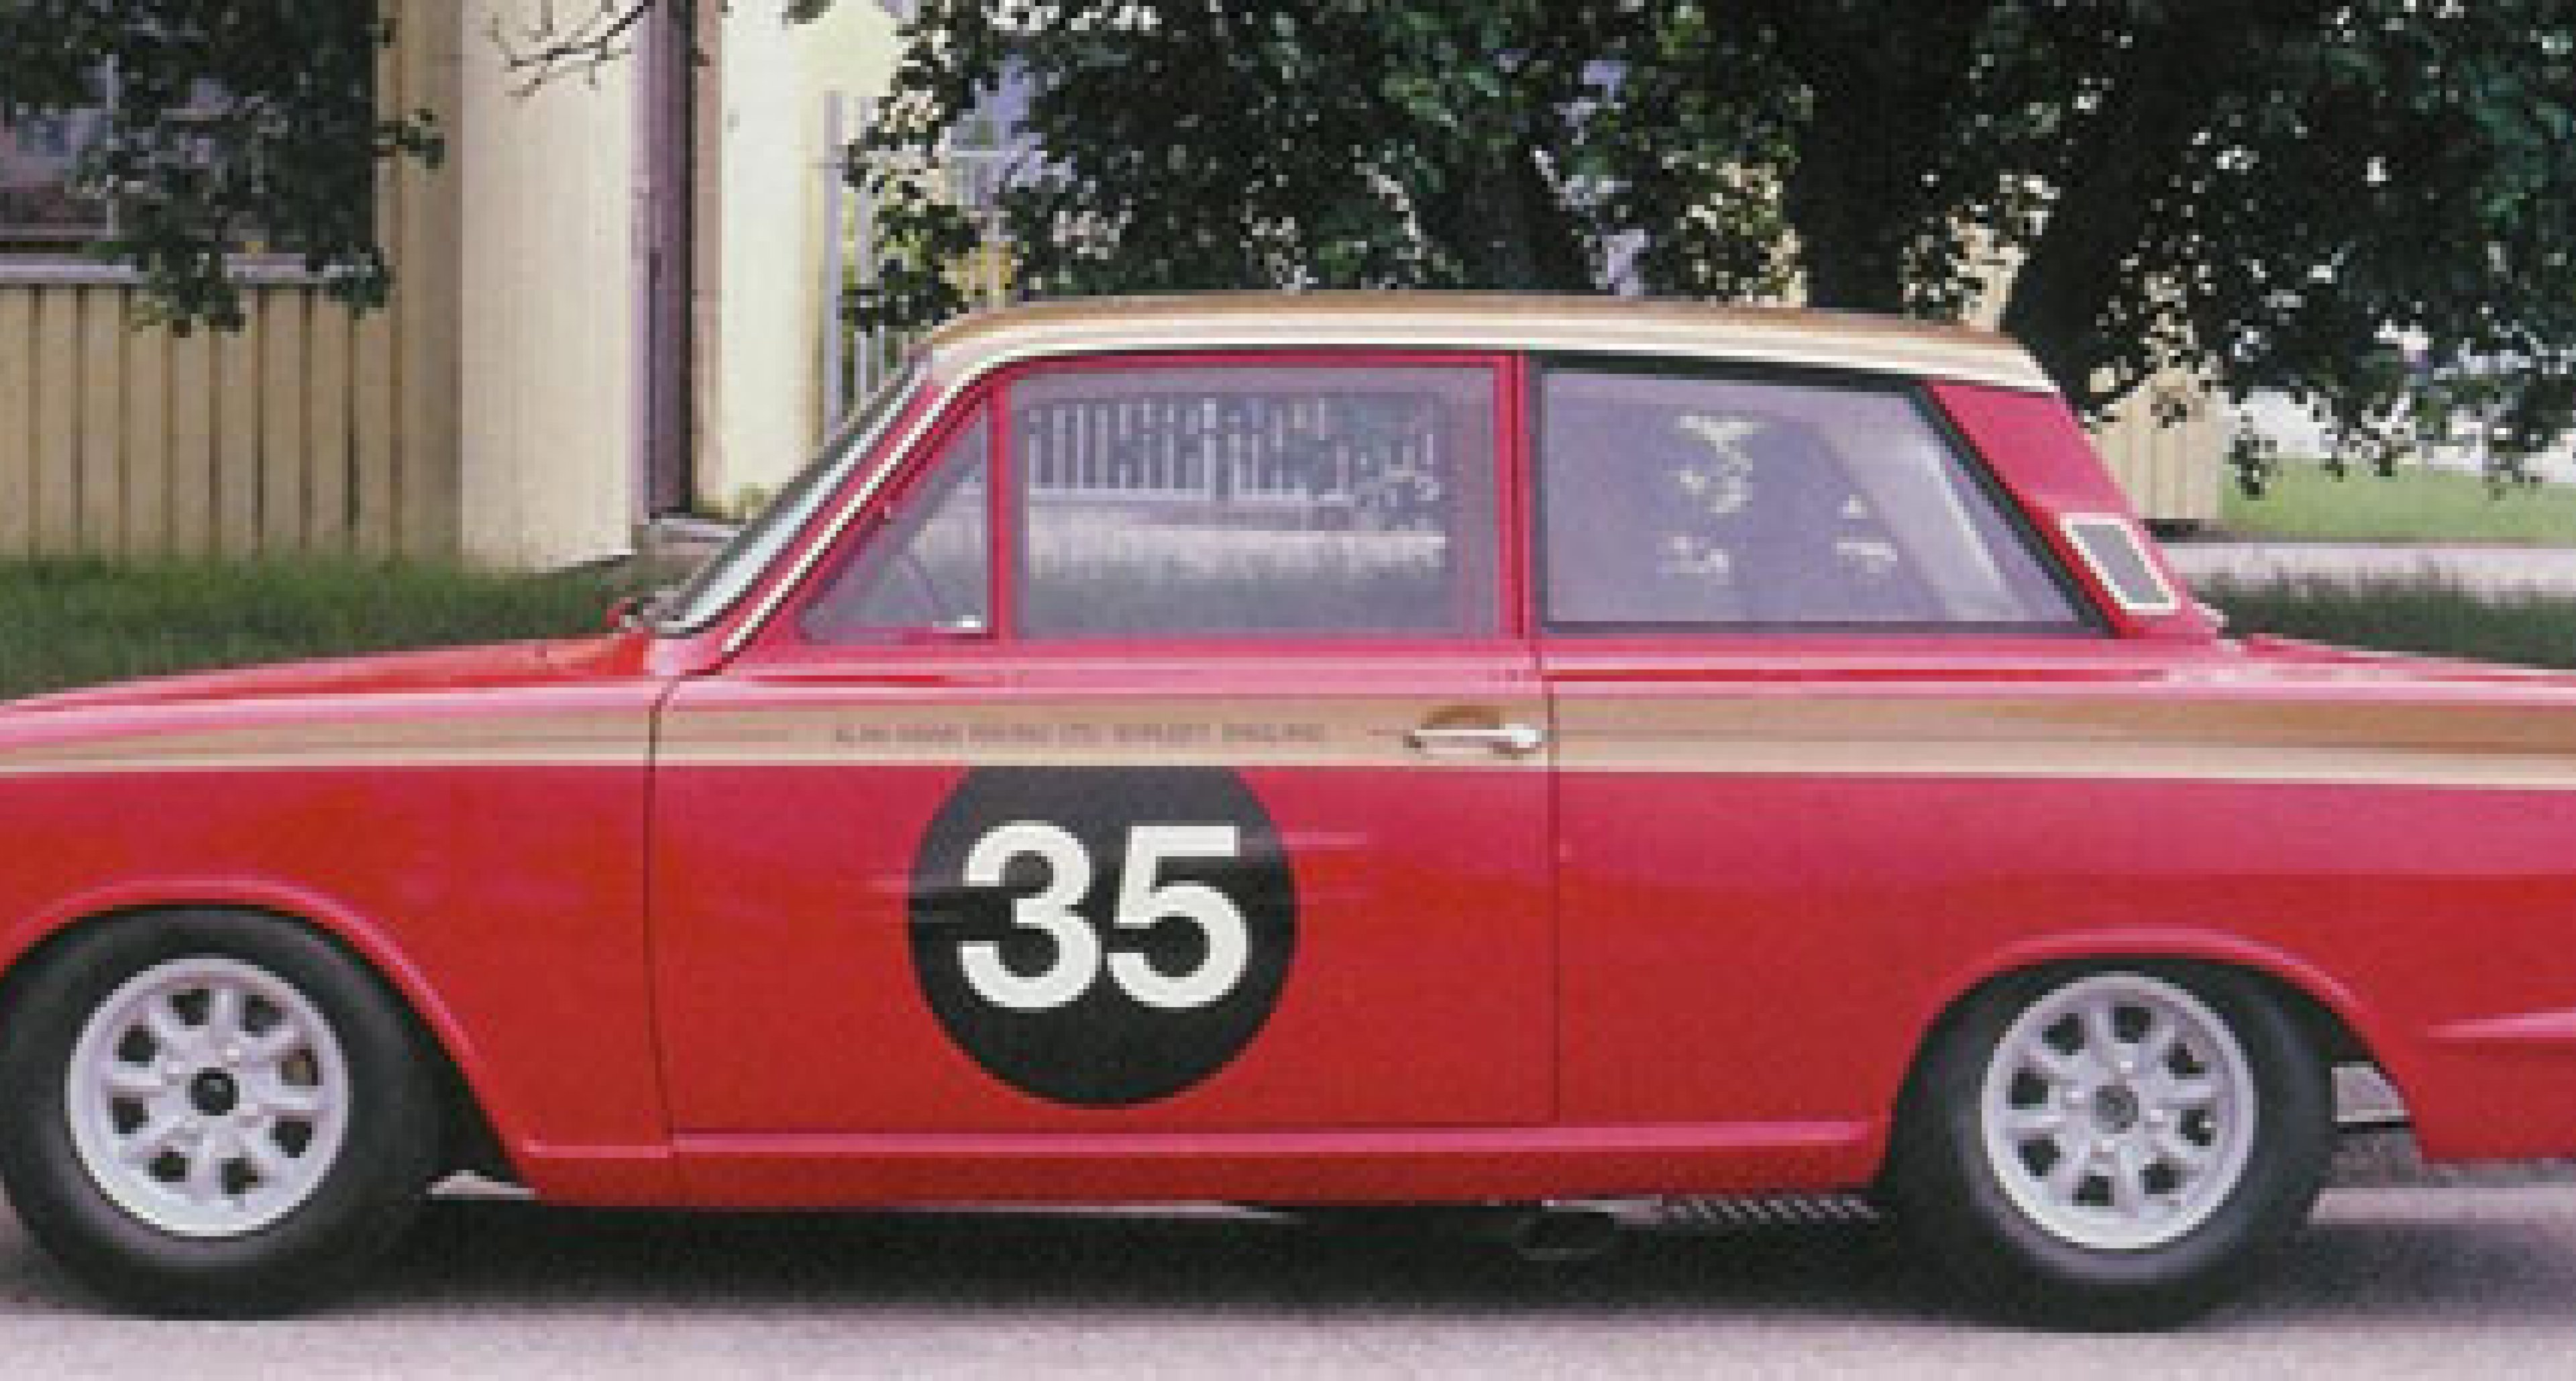 11th July 2003 Bonhams at Goodwood Festival of Speed - Review